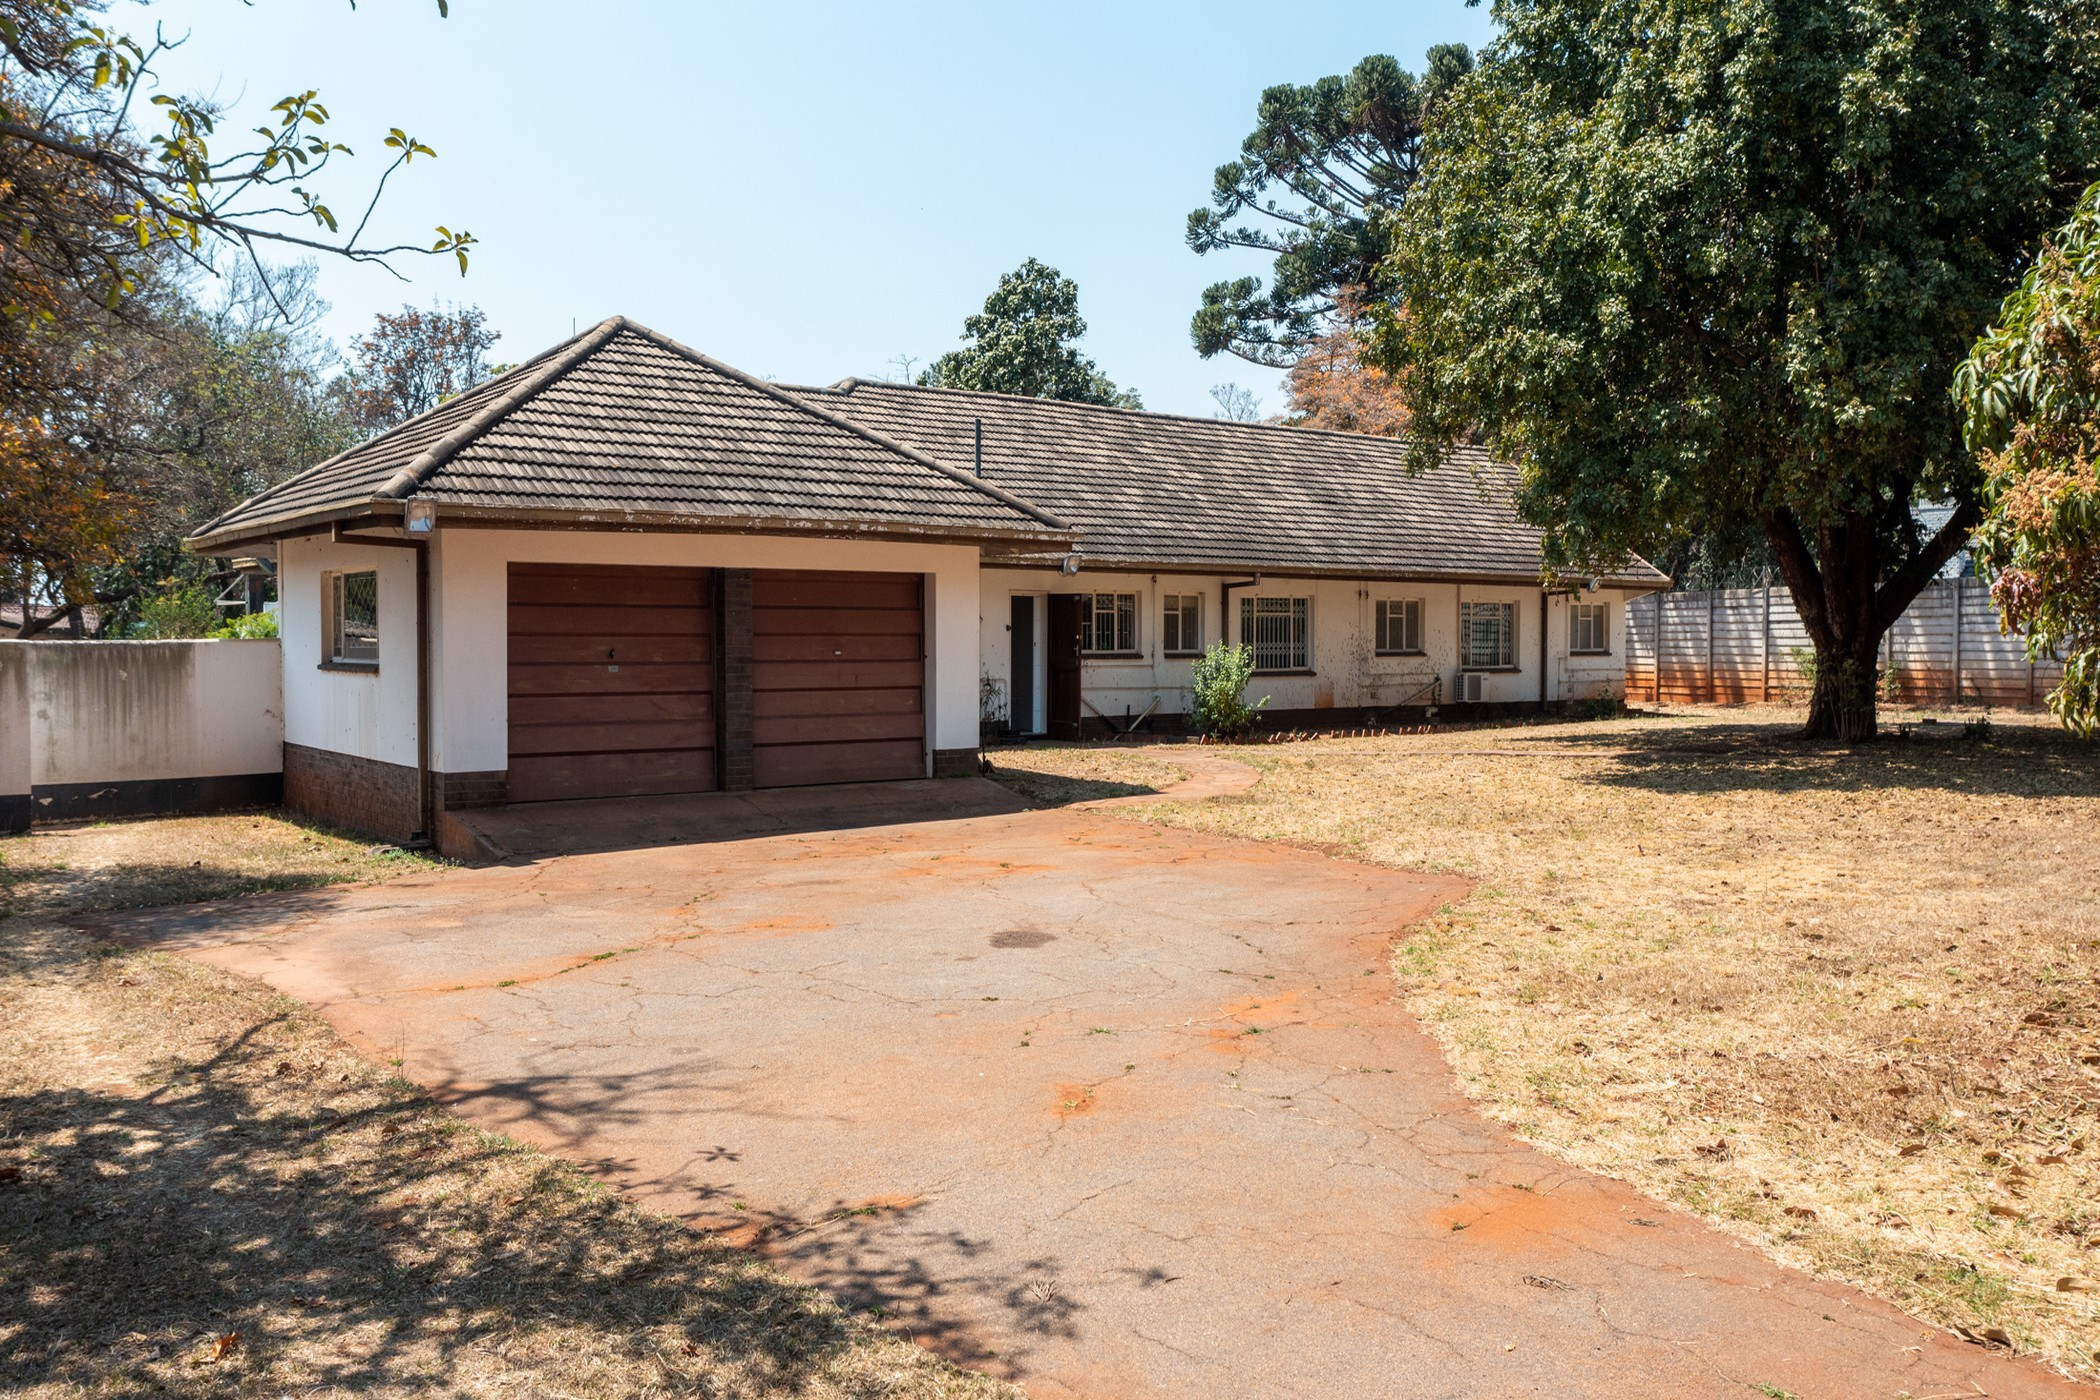 4 bedroom house for sale in Chisipite (Zimbabwe)